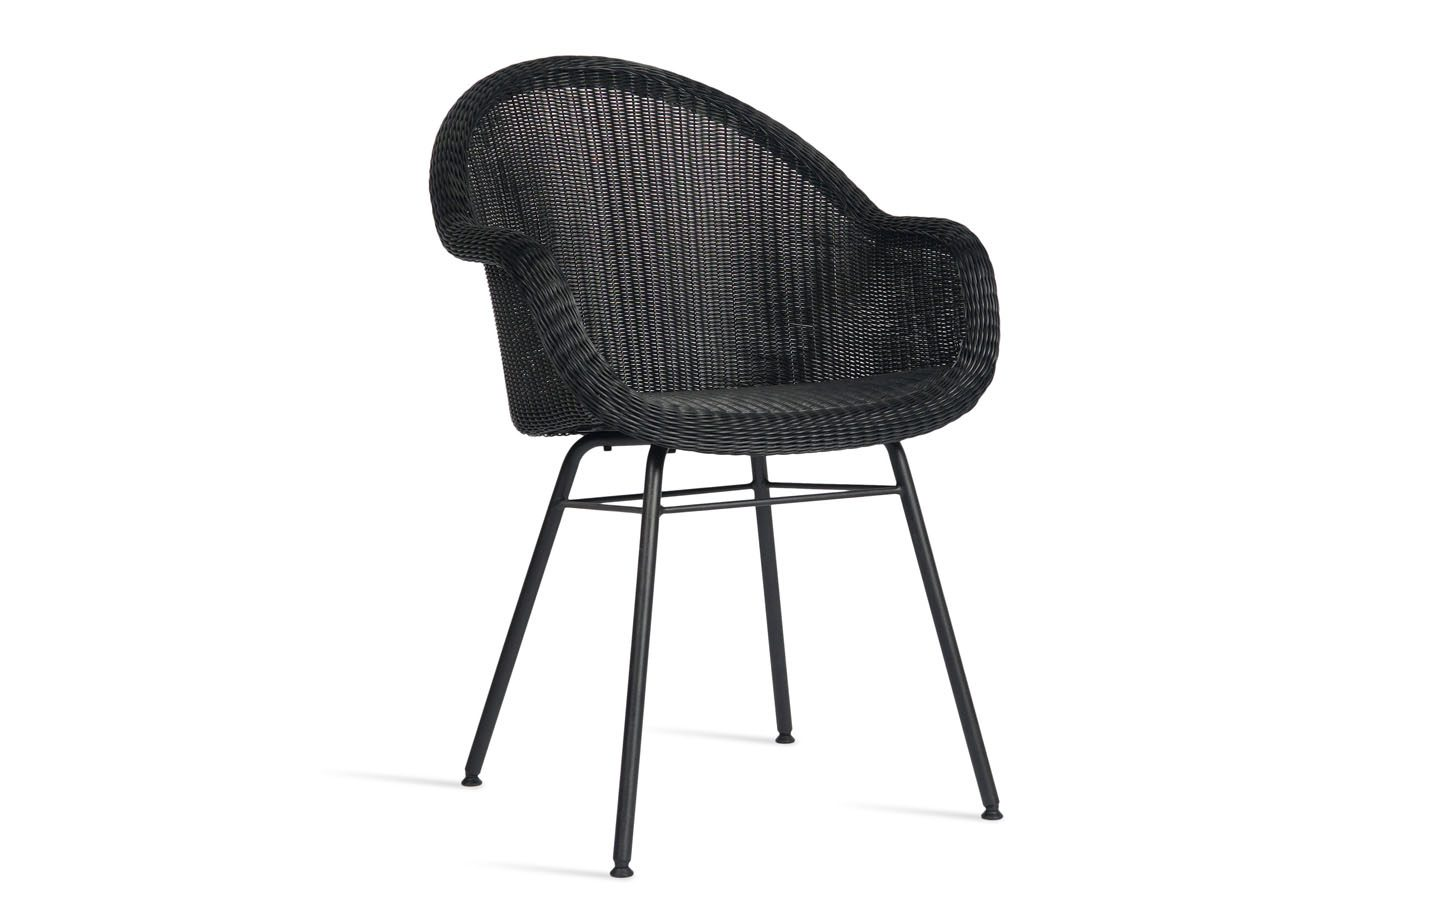 Edgard-dining-chair--black-steel-base-01